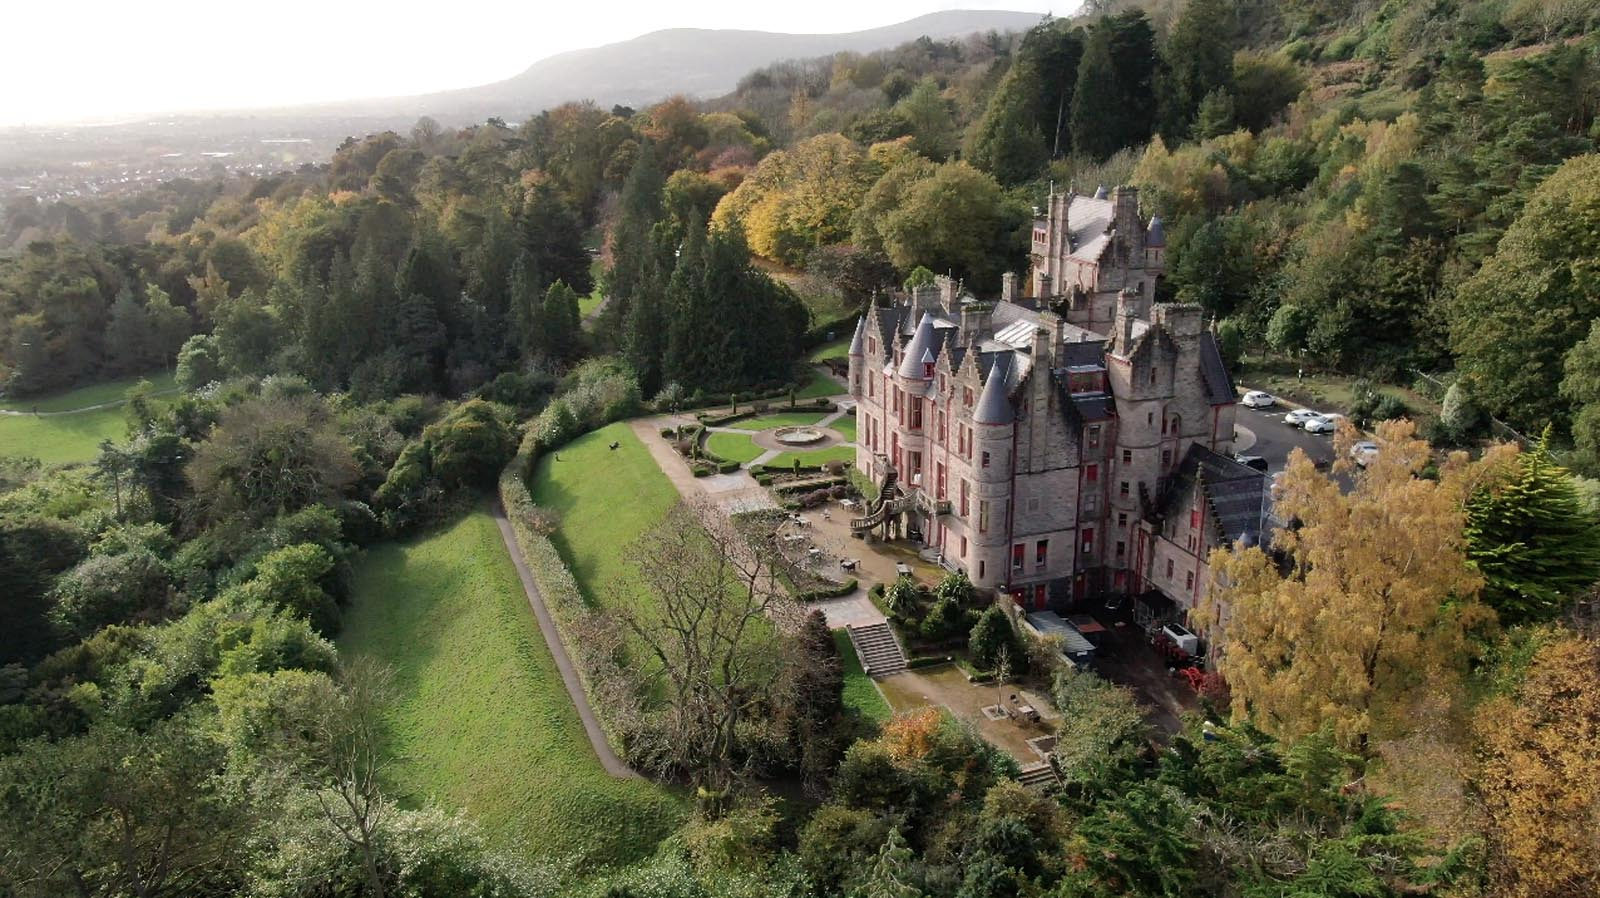 Commercial, residential, property drone photography and video Dublin, Wicklow, Monaghan, Cavan, Ireland portfolio - screenshot 3 of Belfast Castle video